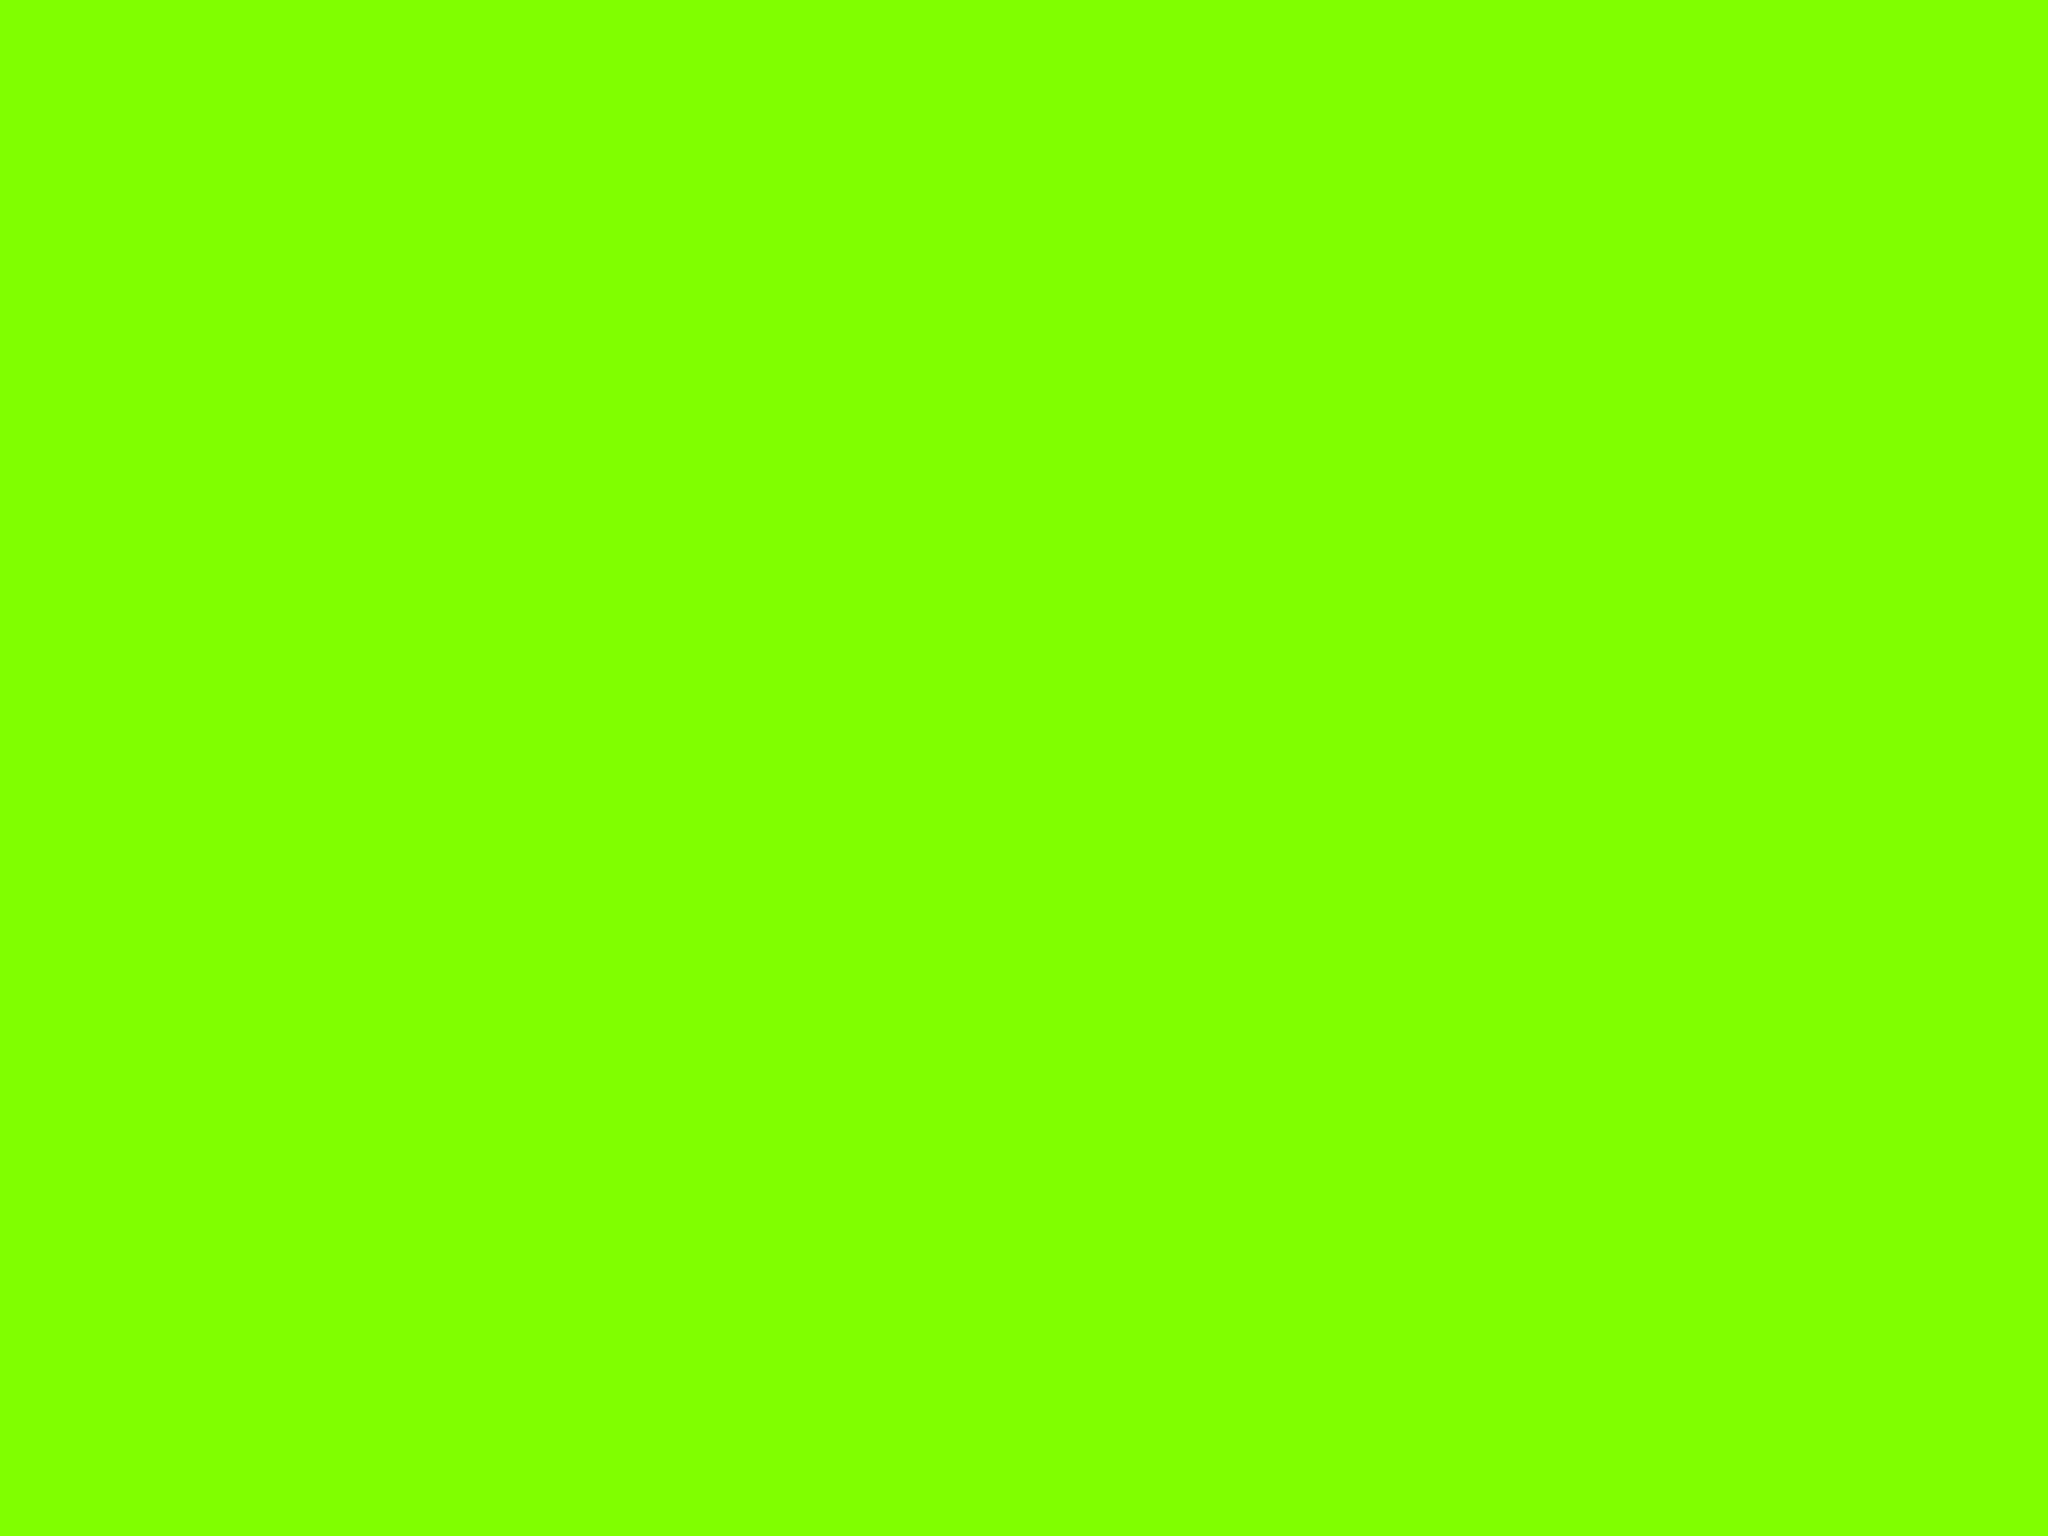 2048x1536 Chartreuse For Web Solid Color Background